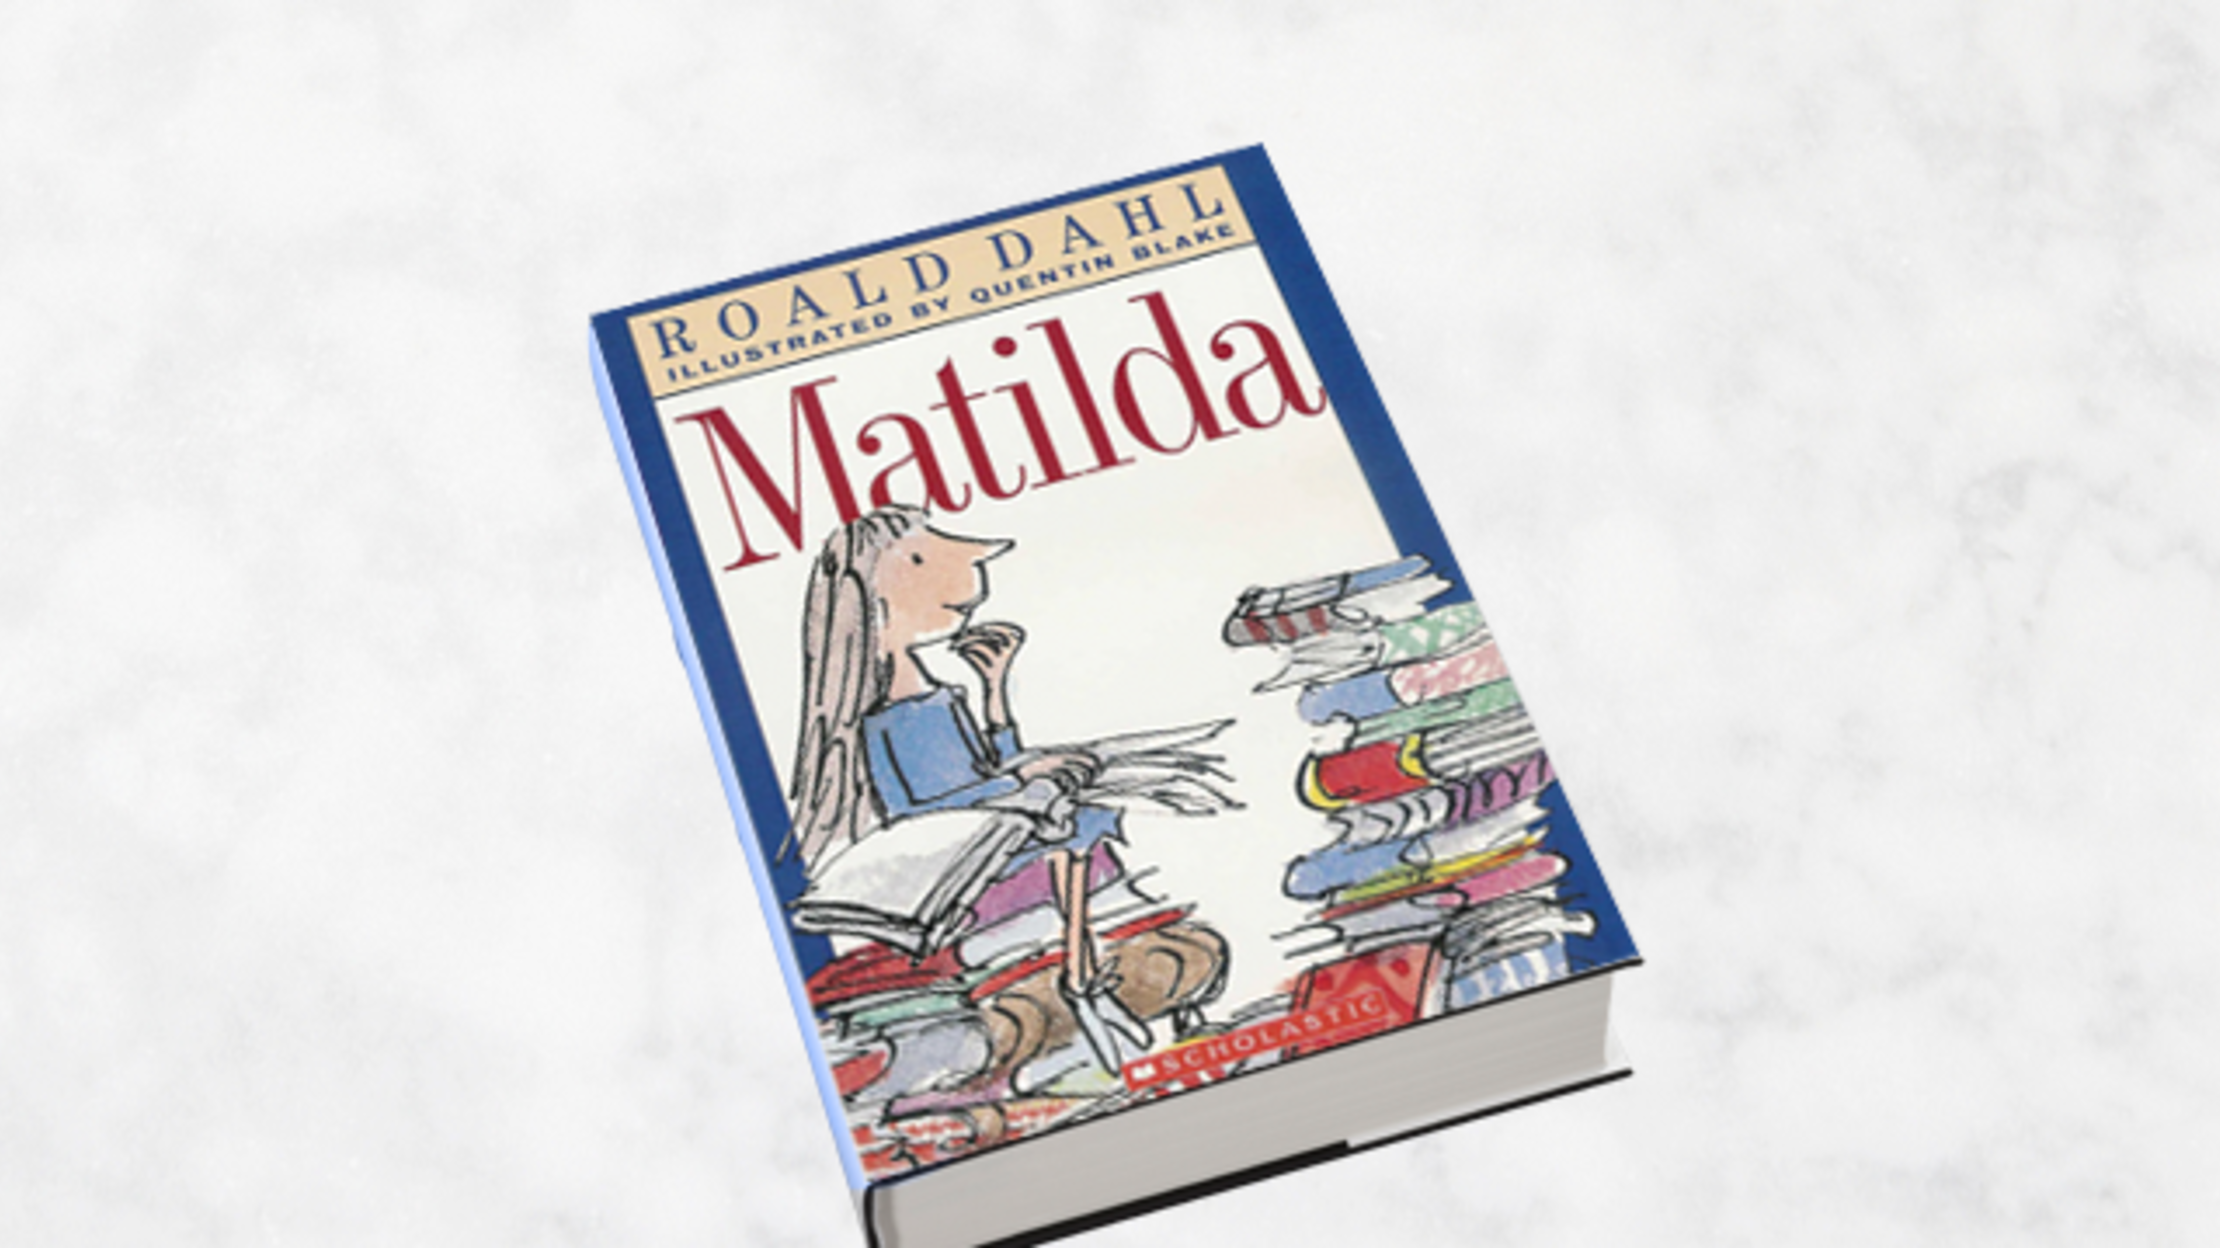 7 Things You May Not Know About Matilda Mental Floss